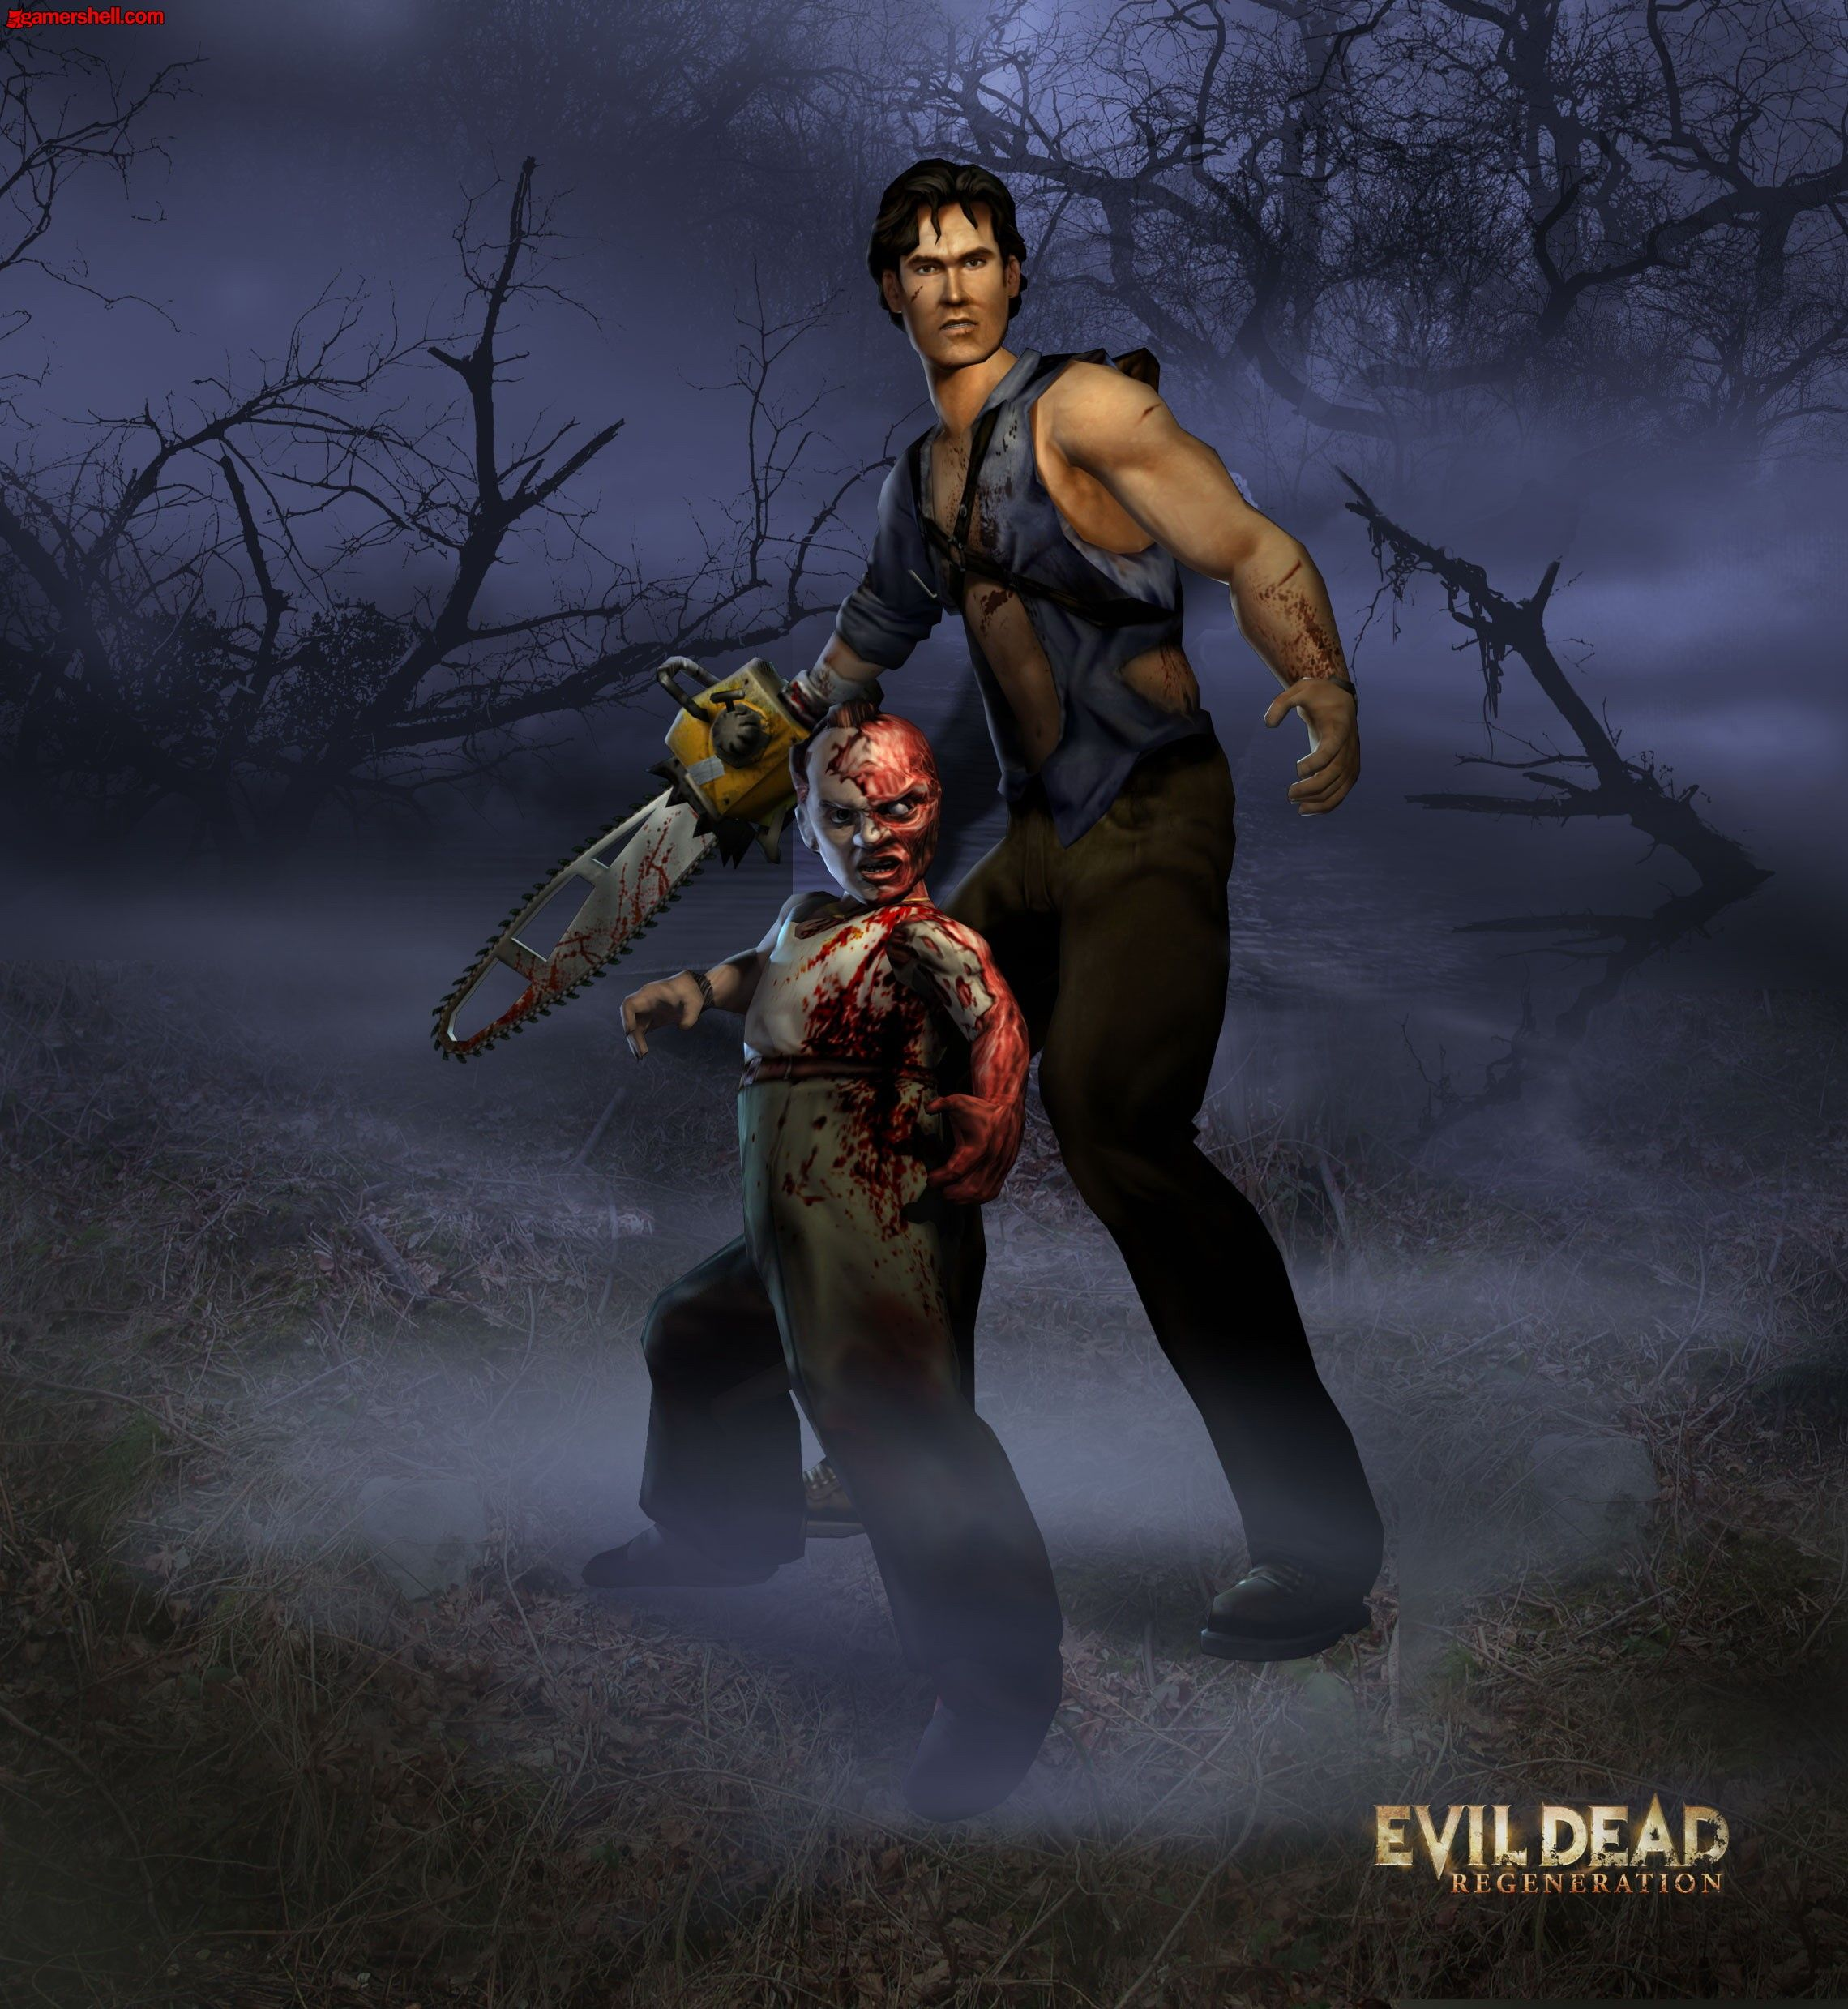 Download Evil Dead Regeneration Wallpaper Evil Dead Regeneration Ash Evil Dead Regeneration